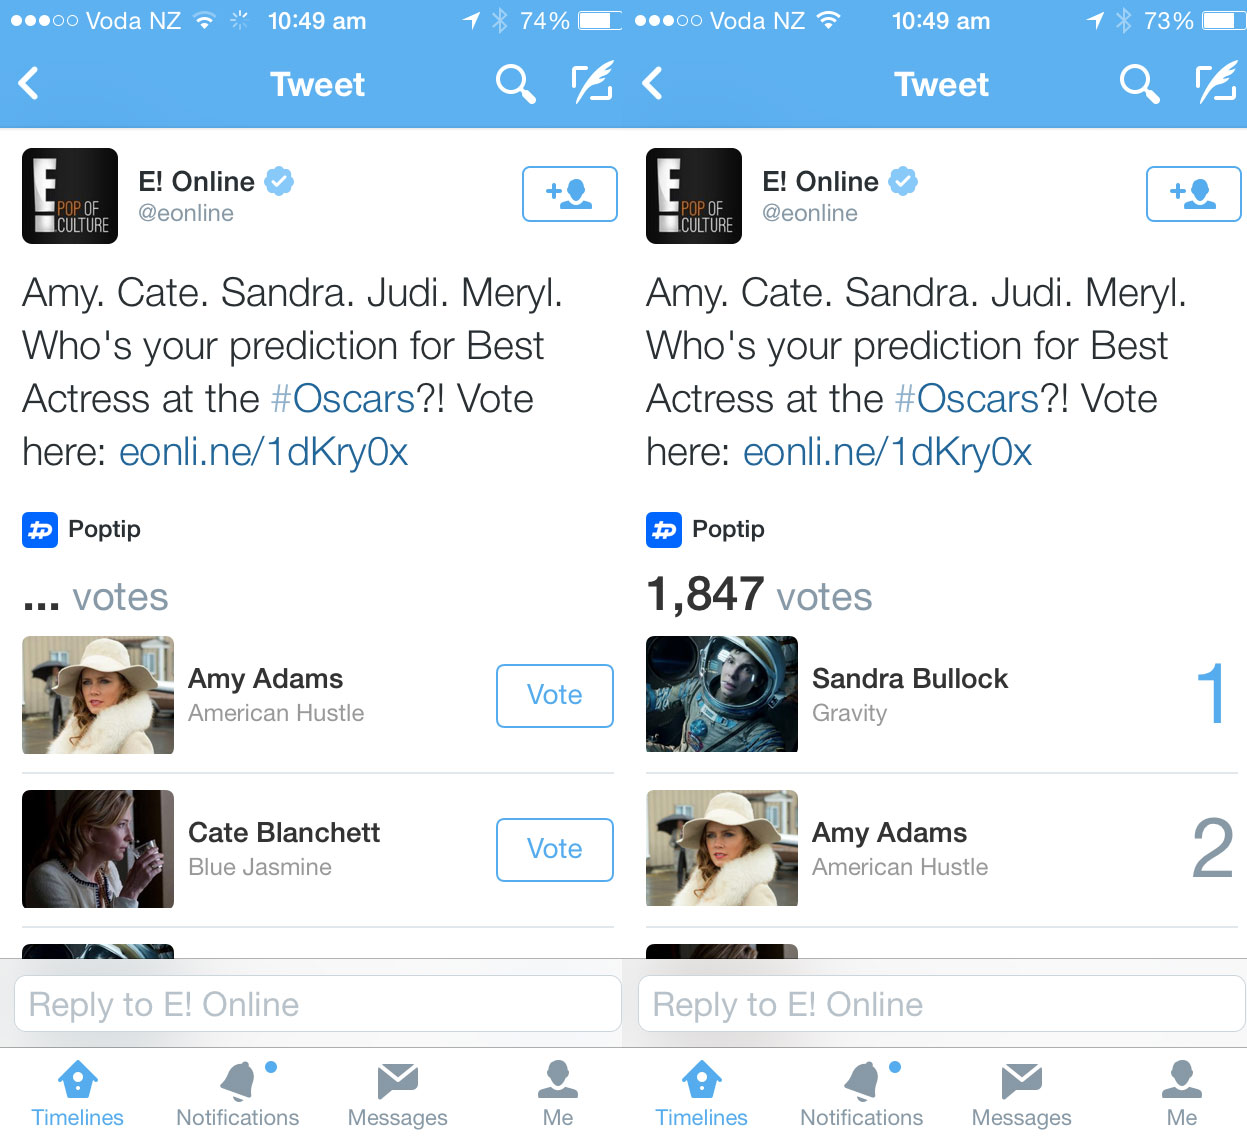 New Twitter card lets you vote for your Oscar favorites